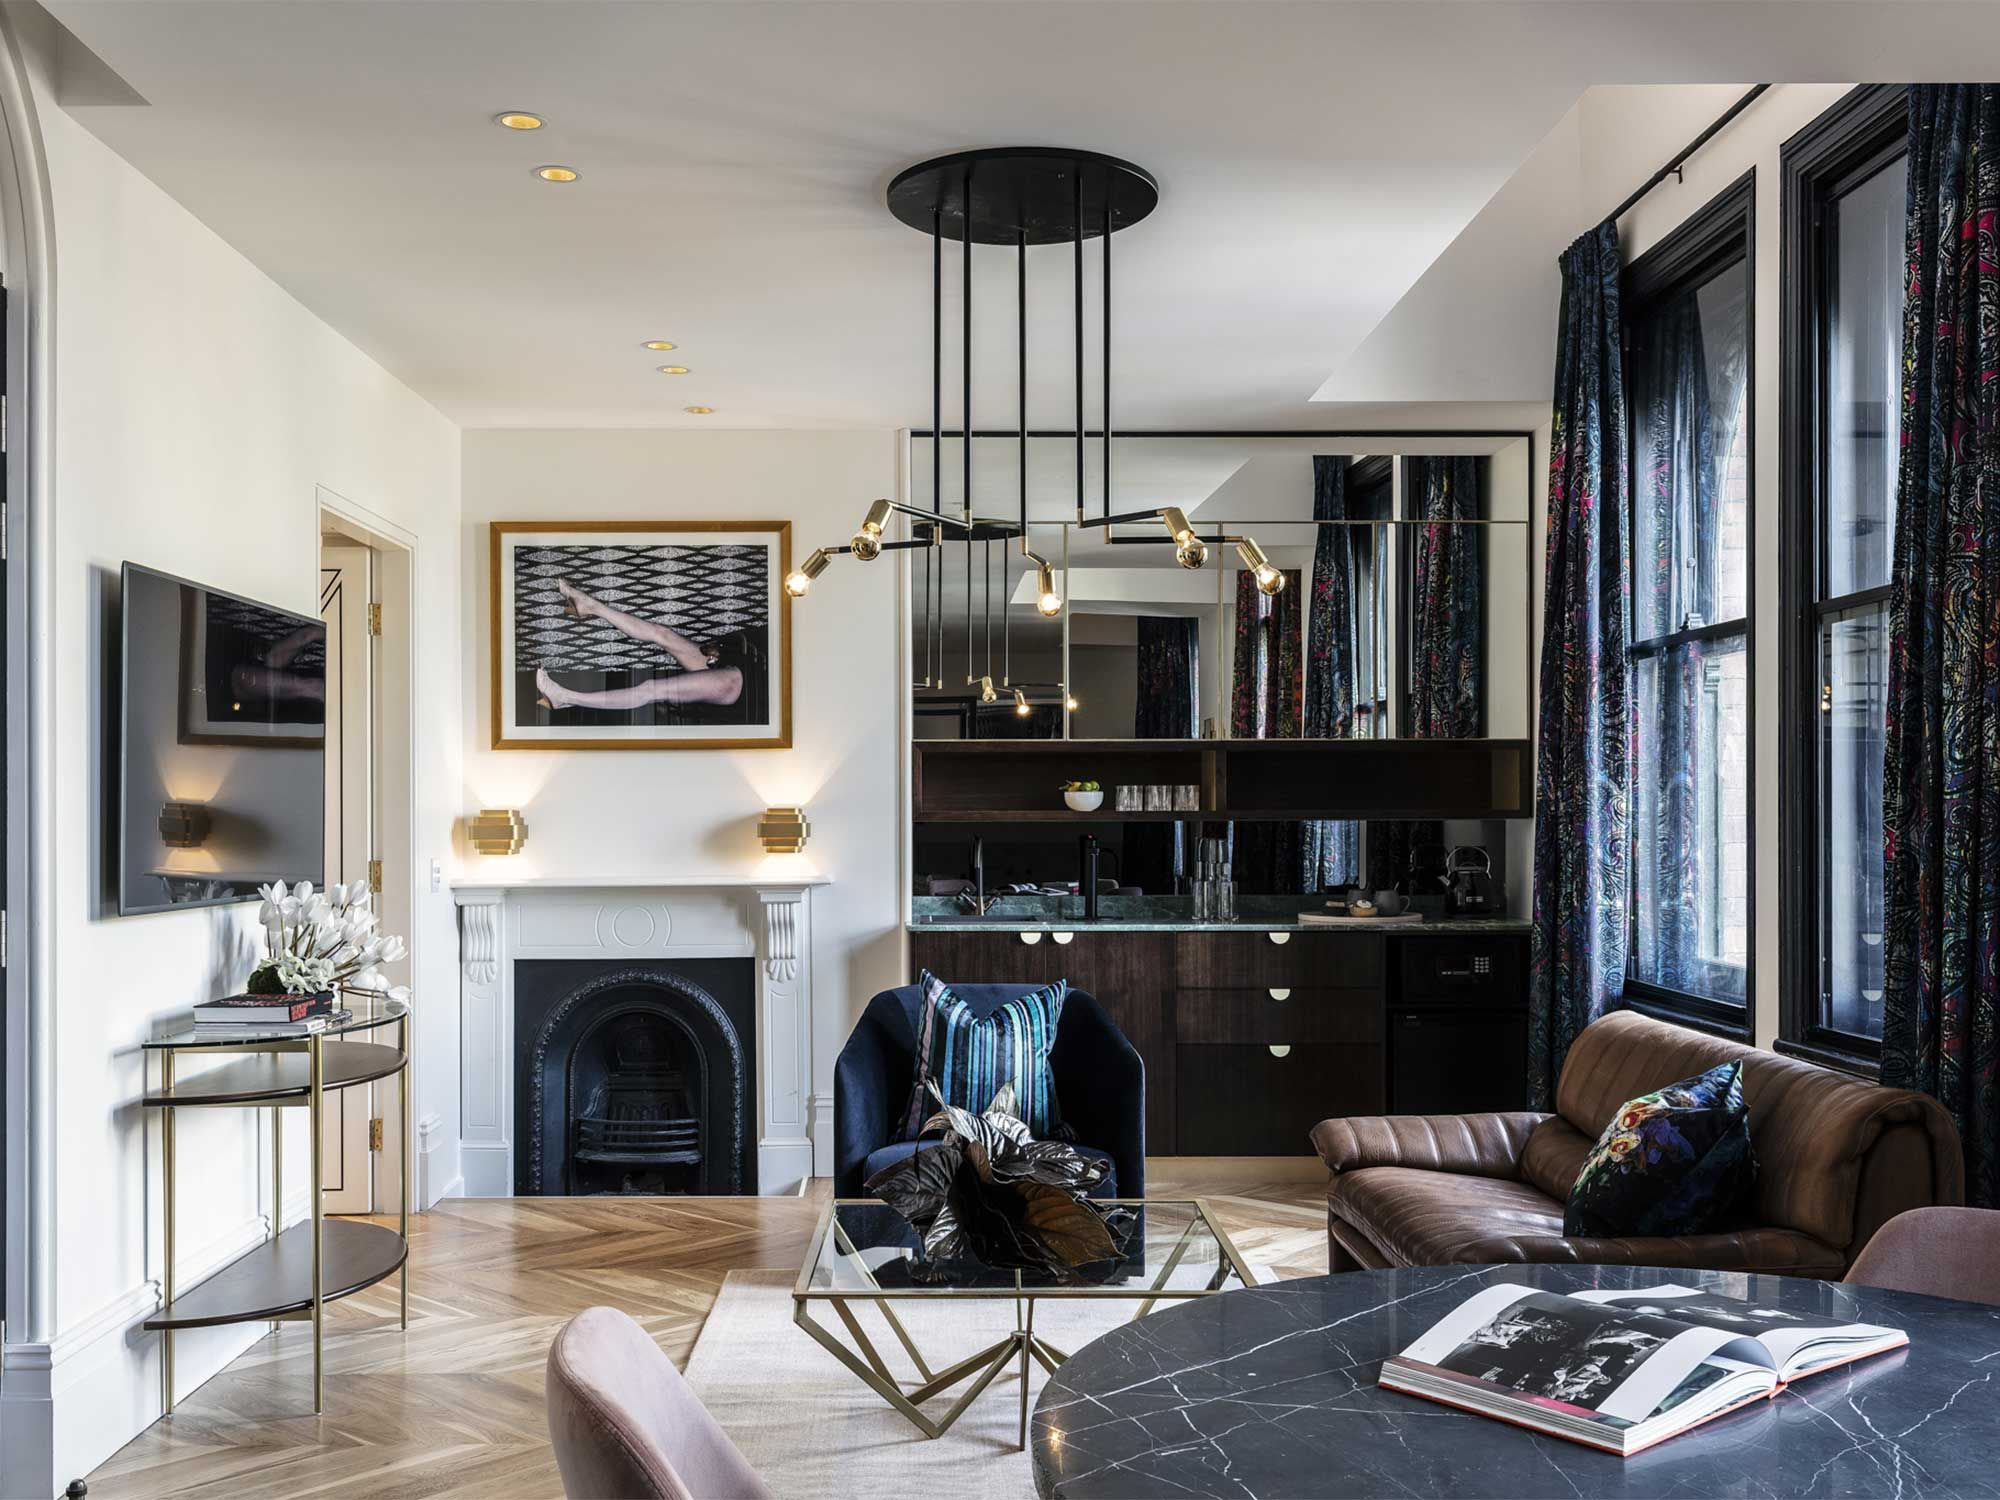 Hotel interiors online beautiful home furnishings surry hills alessi also hot rooms to inspire your design at it   best rh pinterest